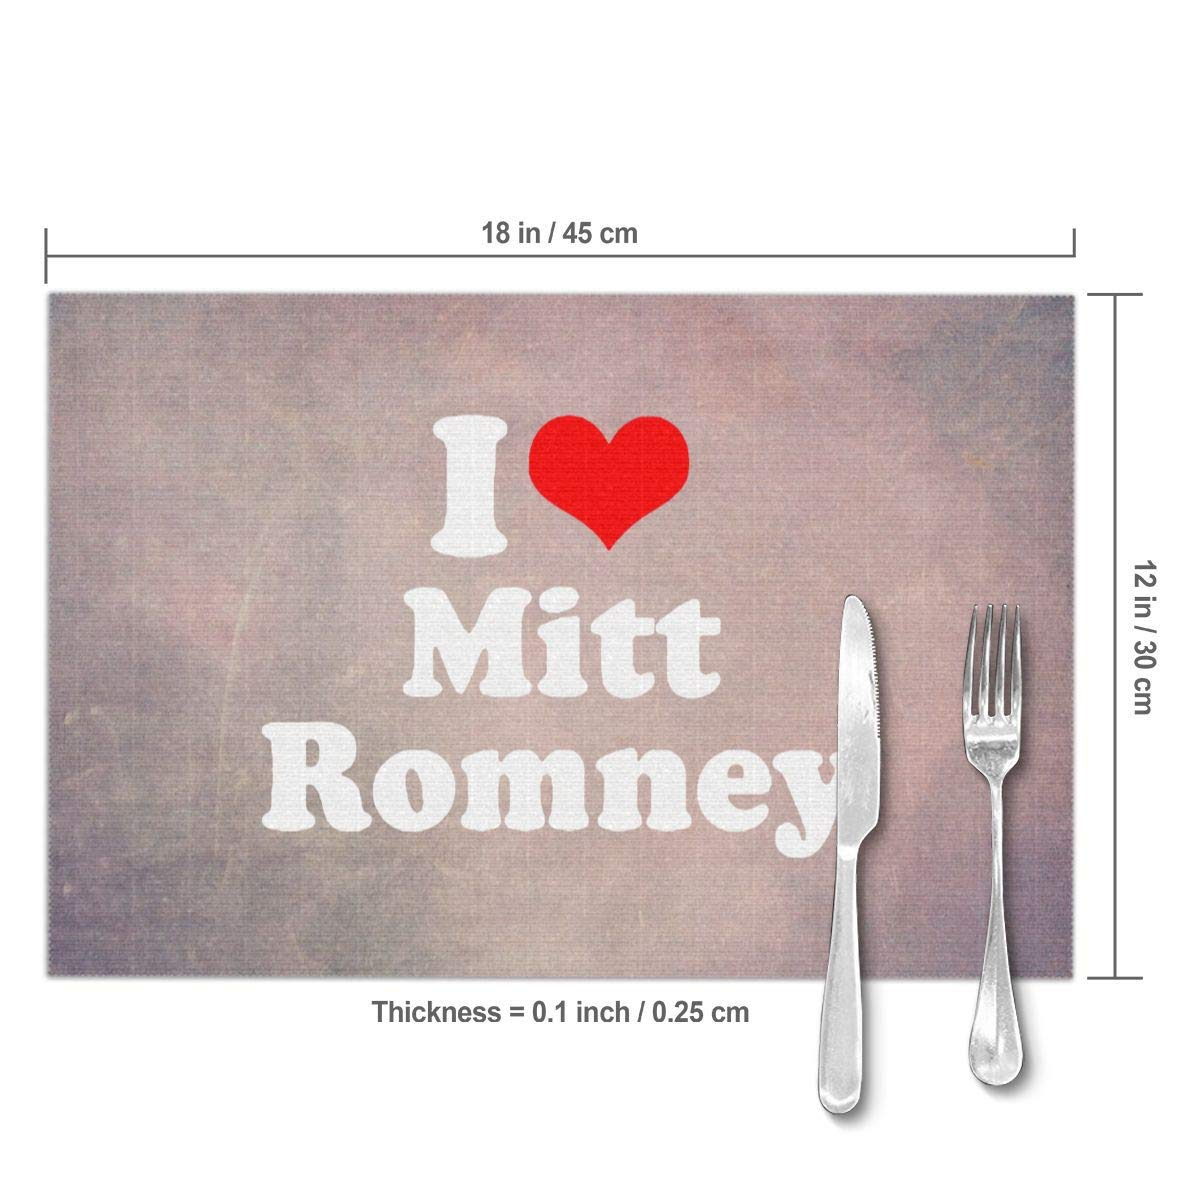 I Love Mitt Romney Travel Tags For Suitcase Bag Accessories 2 Pack Luggage Tags